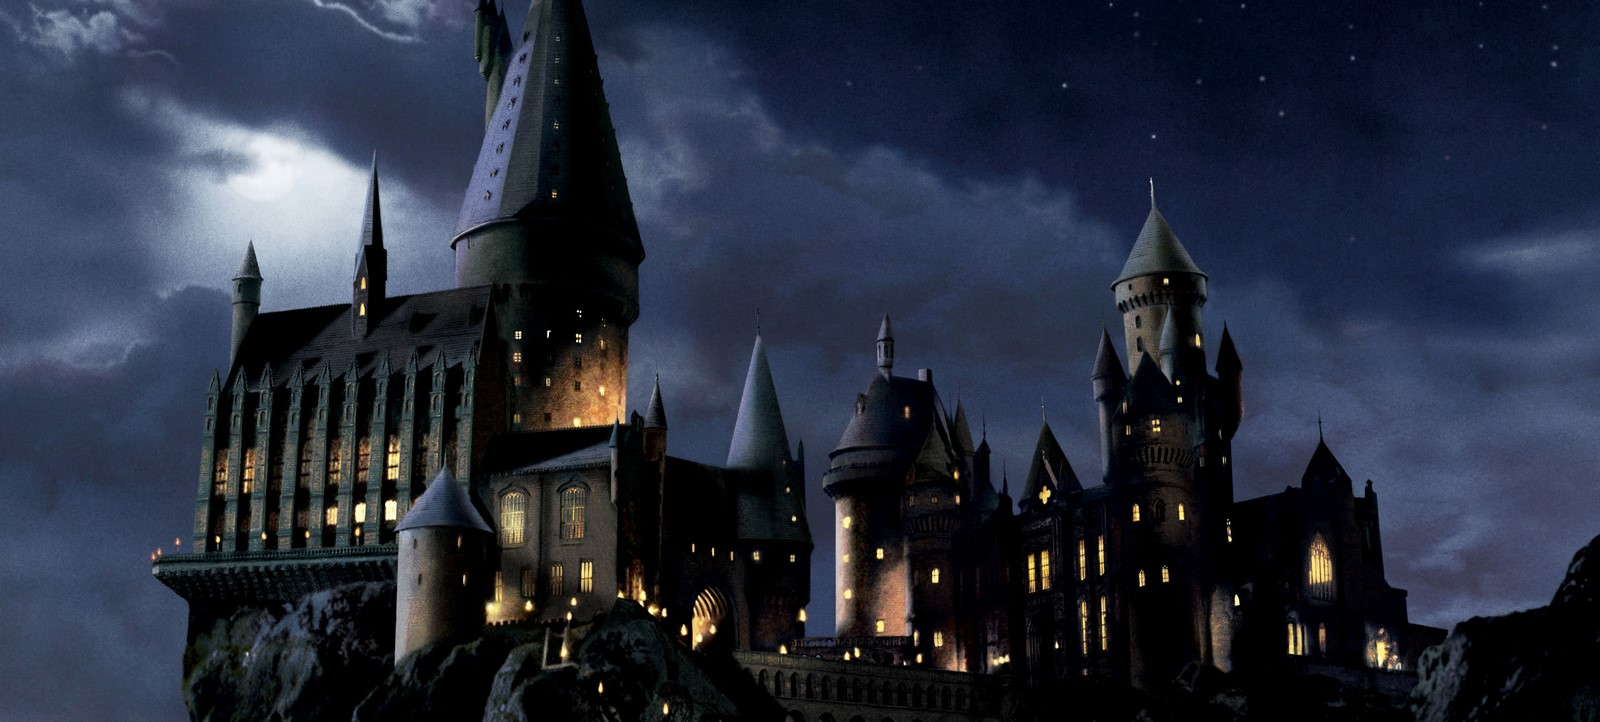 The Wizarding World meets Architectural world - Sheet1